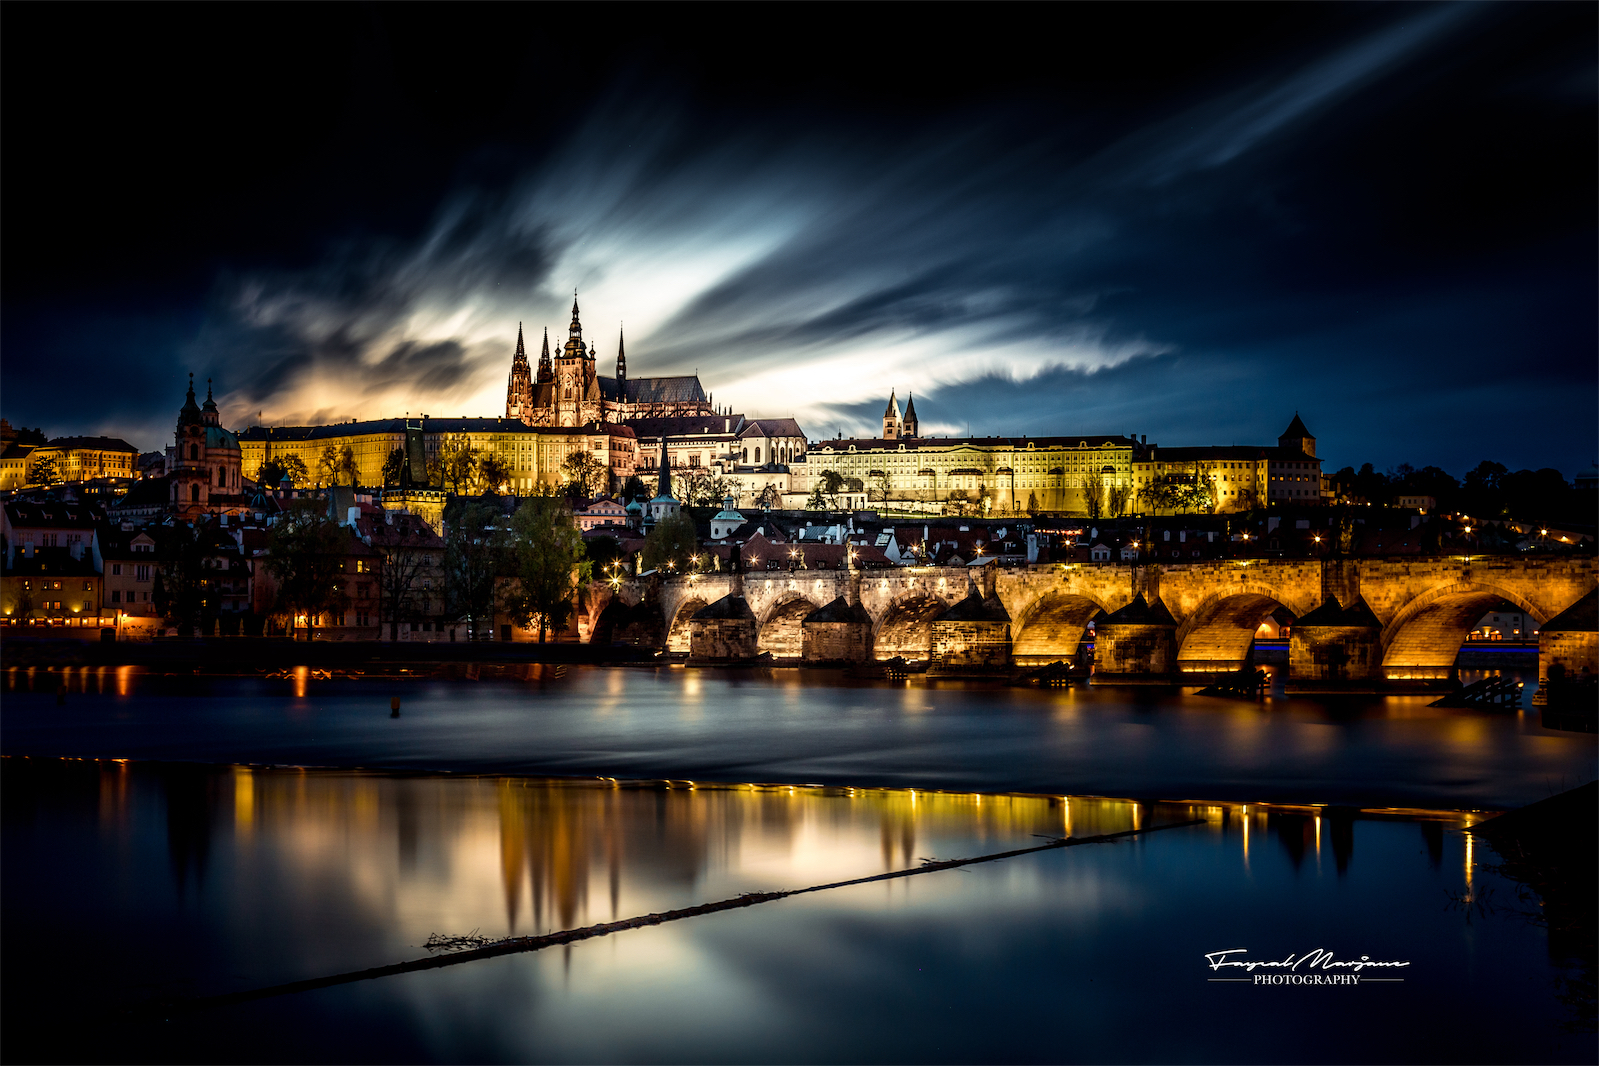 Charles Bridge and the Palace, Czech Republic